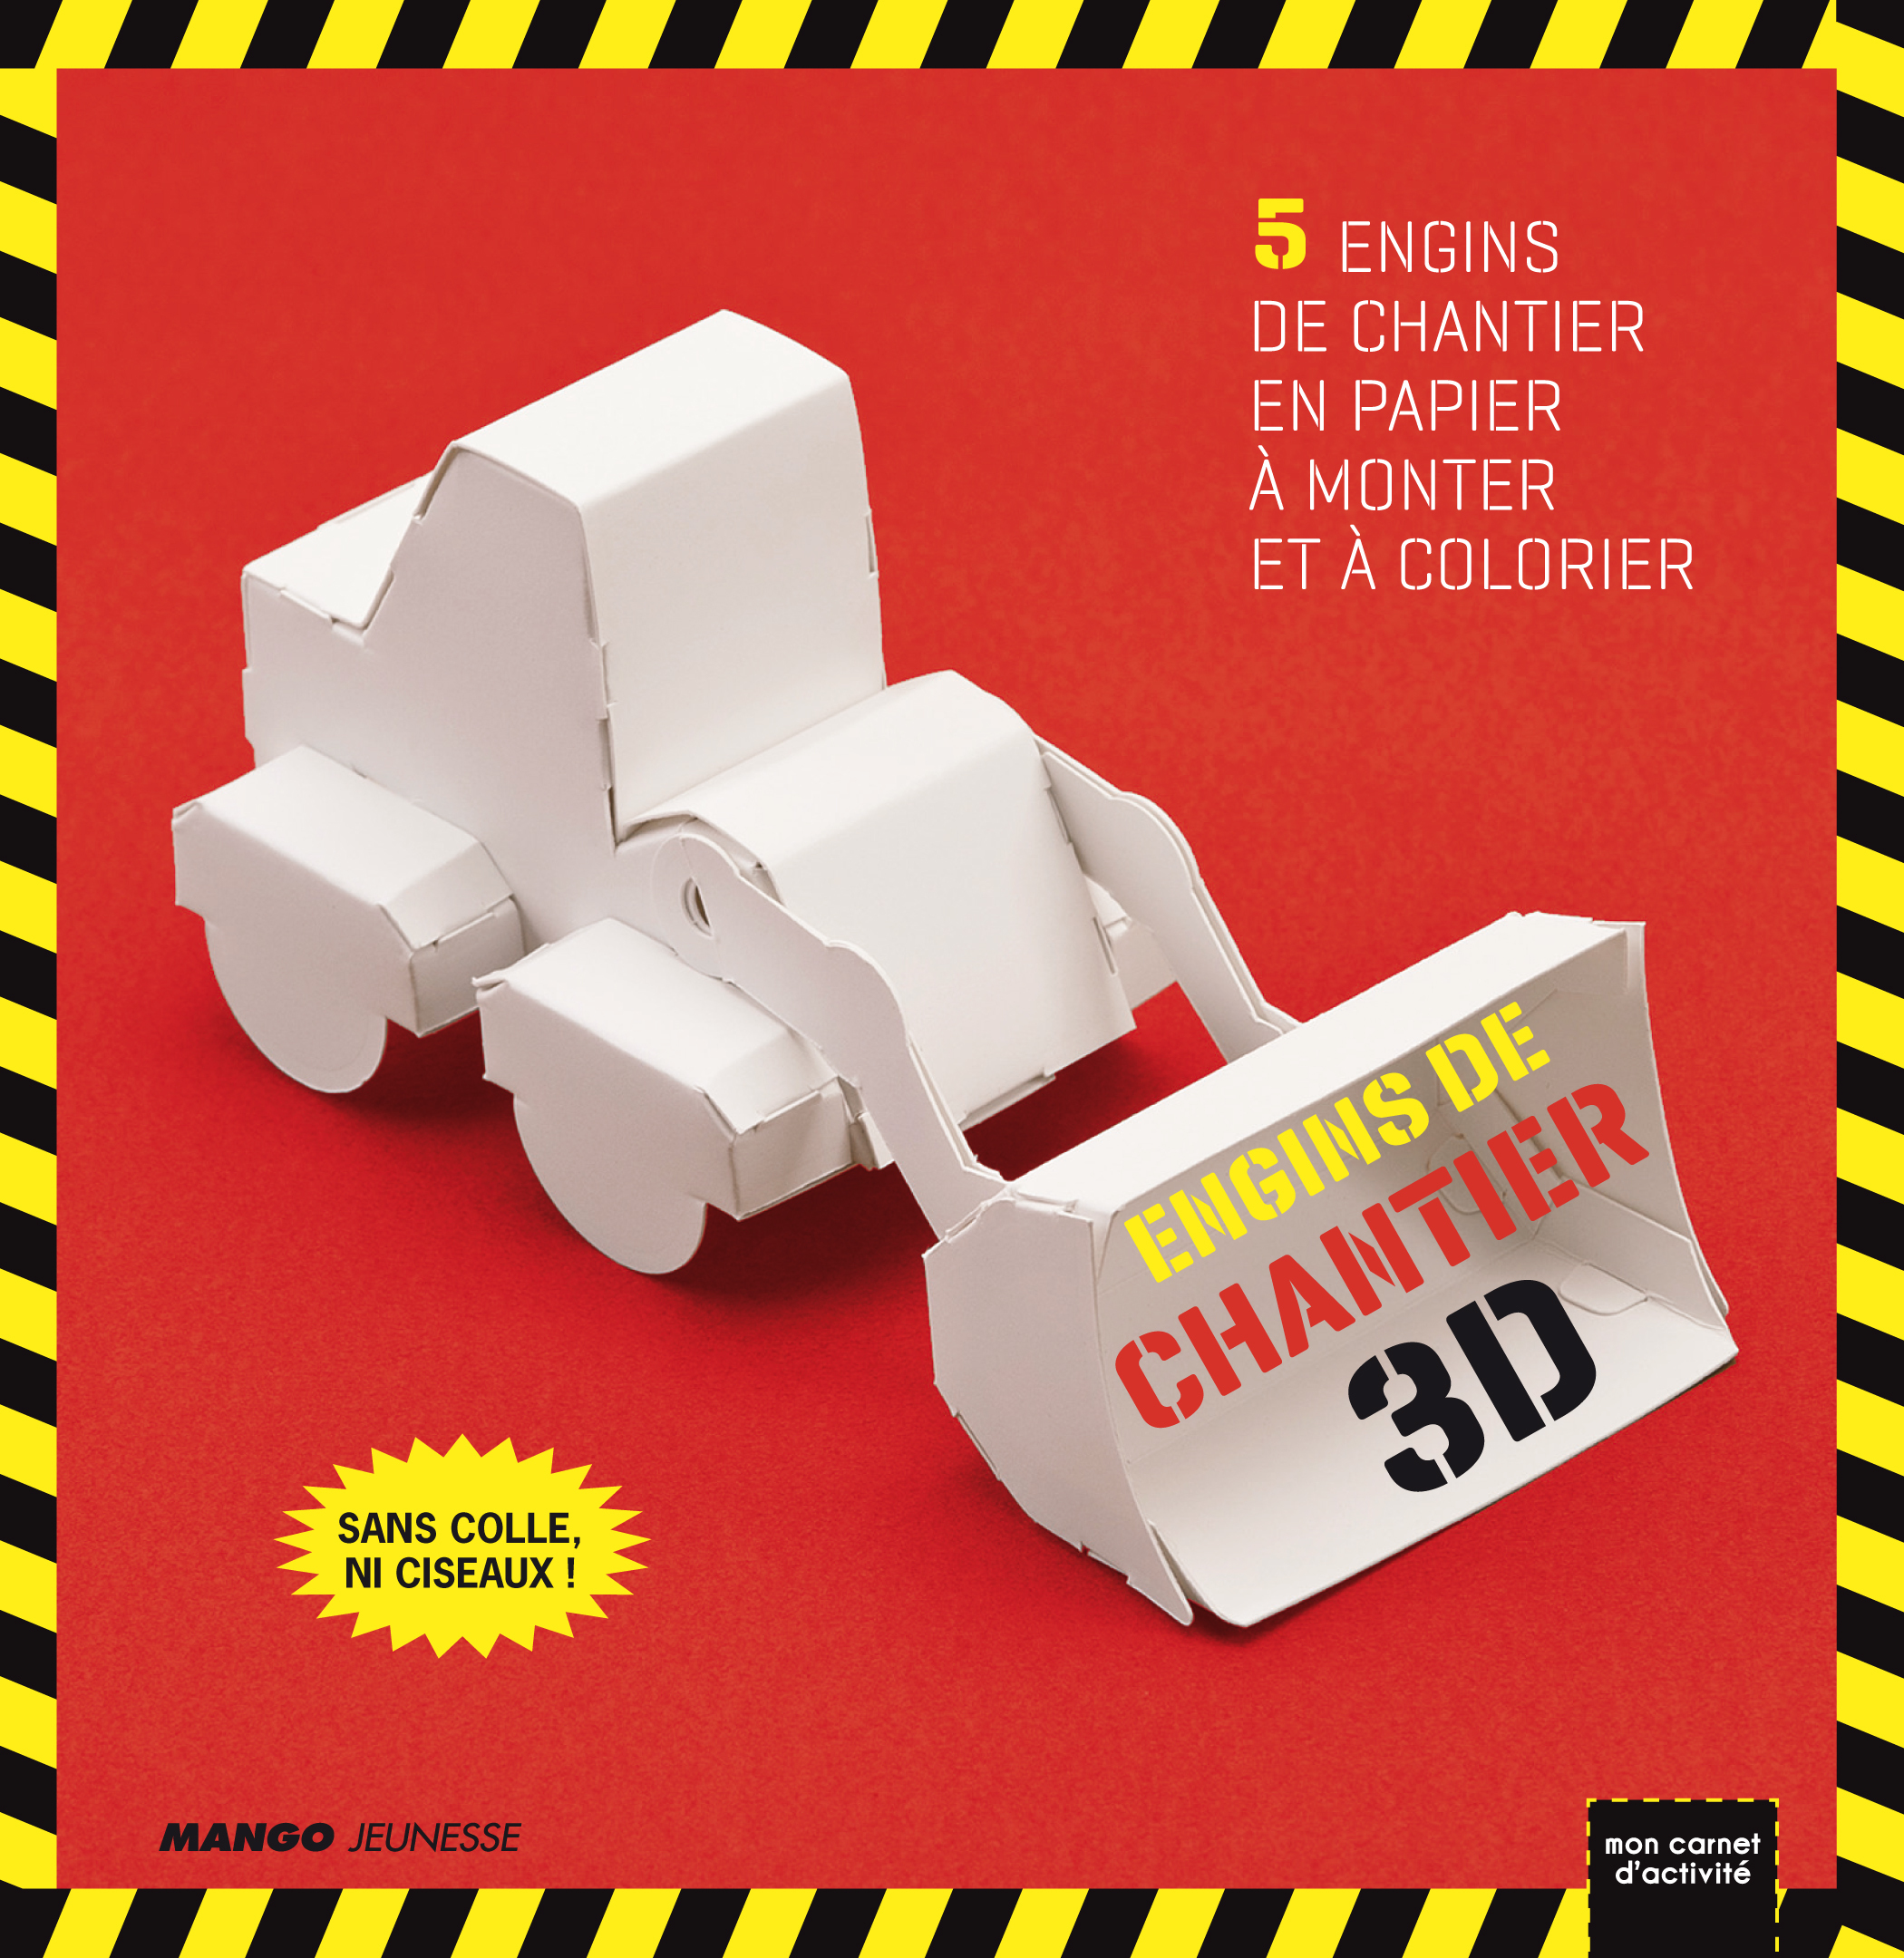 ENGINS DE CHANTIER 3 D